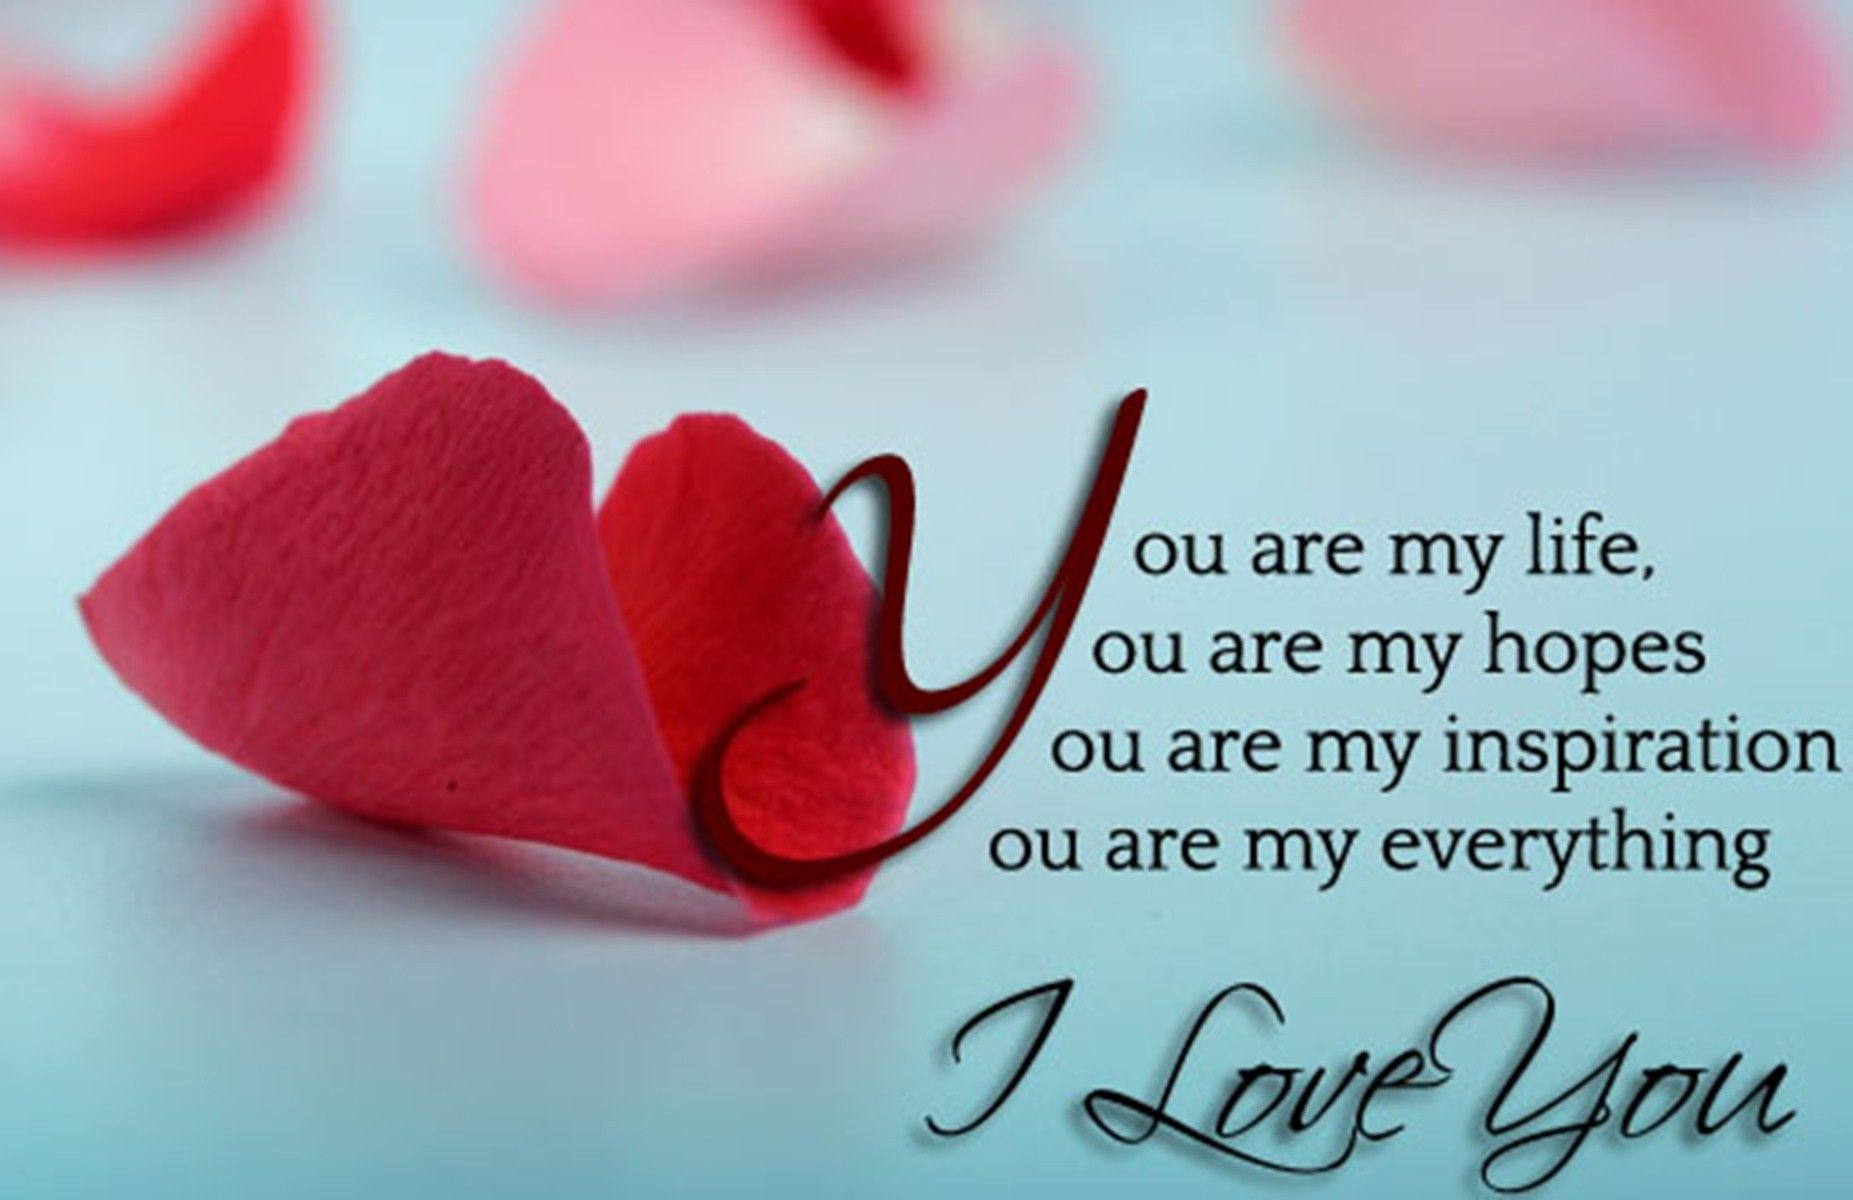 Hd wallpaper quotes on love - Sweet Love Quotes